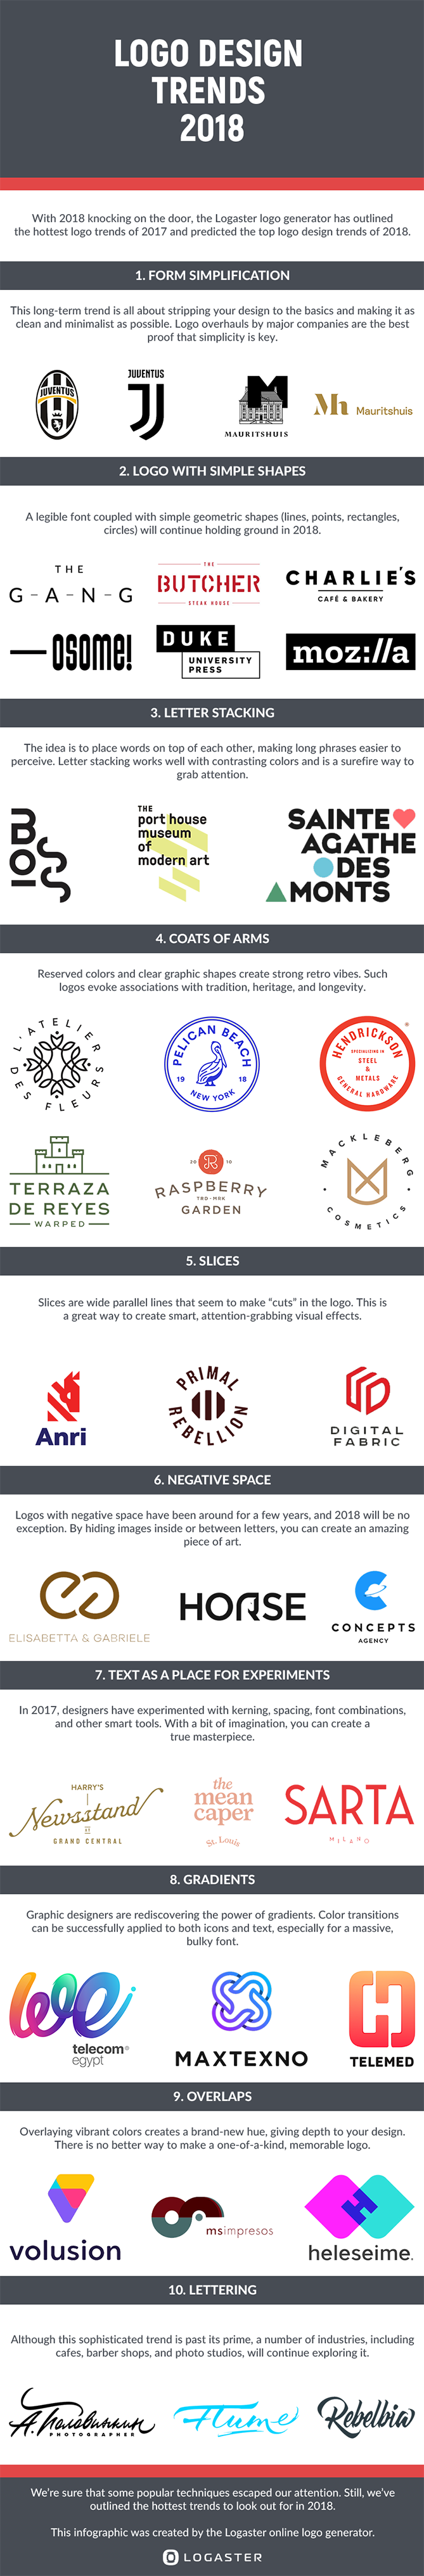 10 Logo Design Trends to Watch for in 2018 [Infographic] | AAA ...